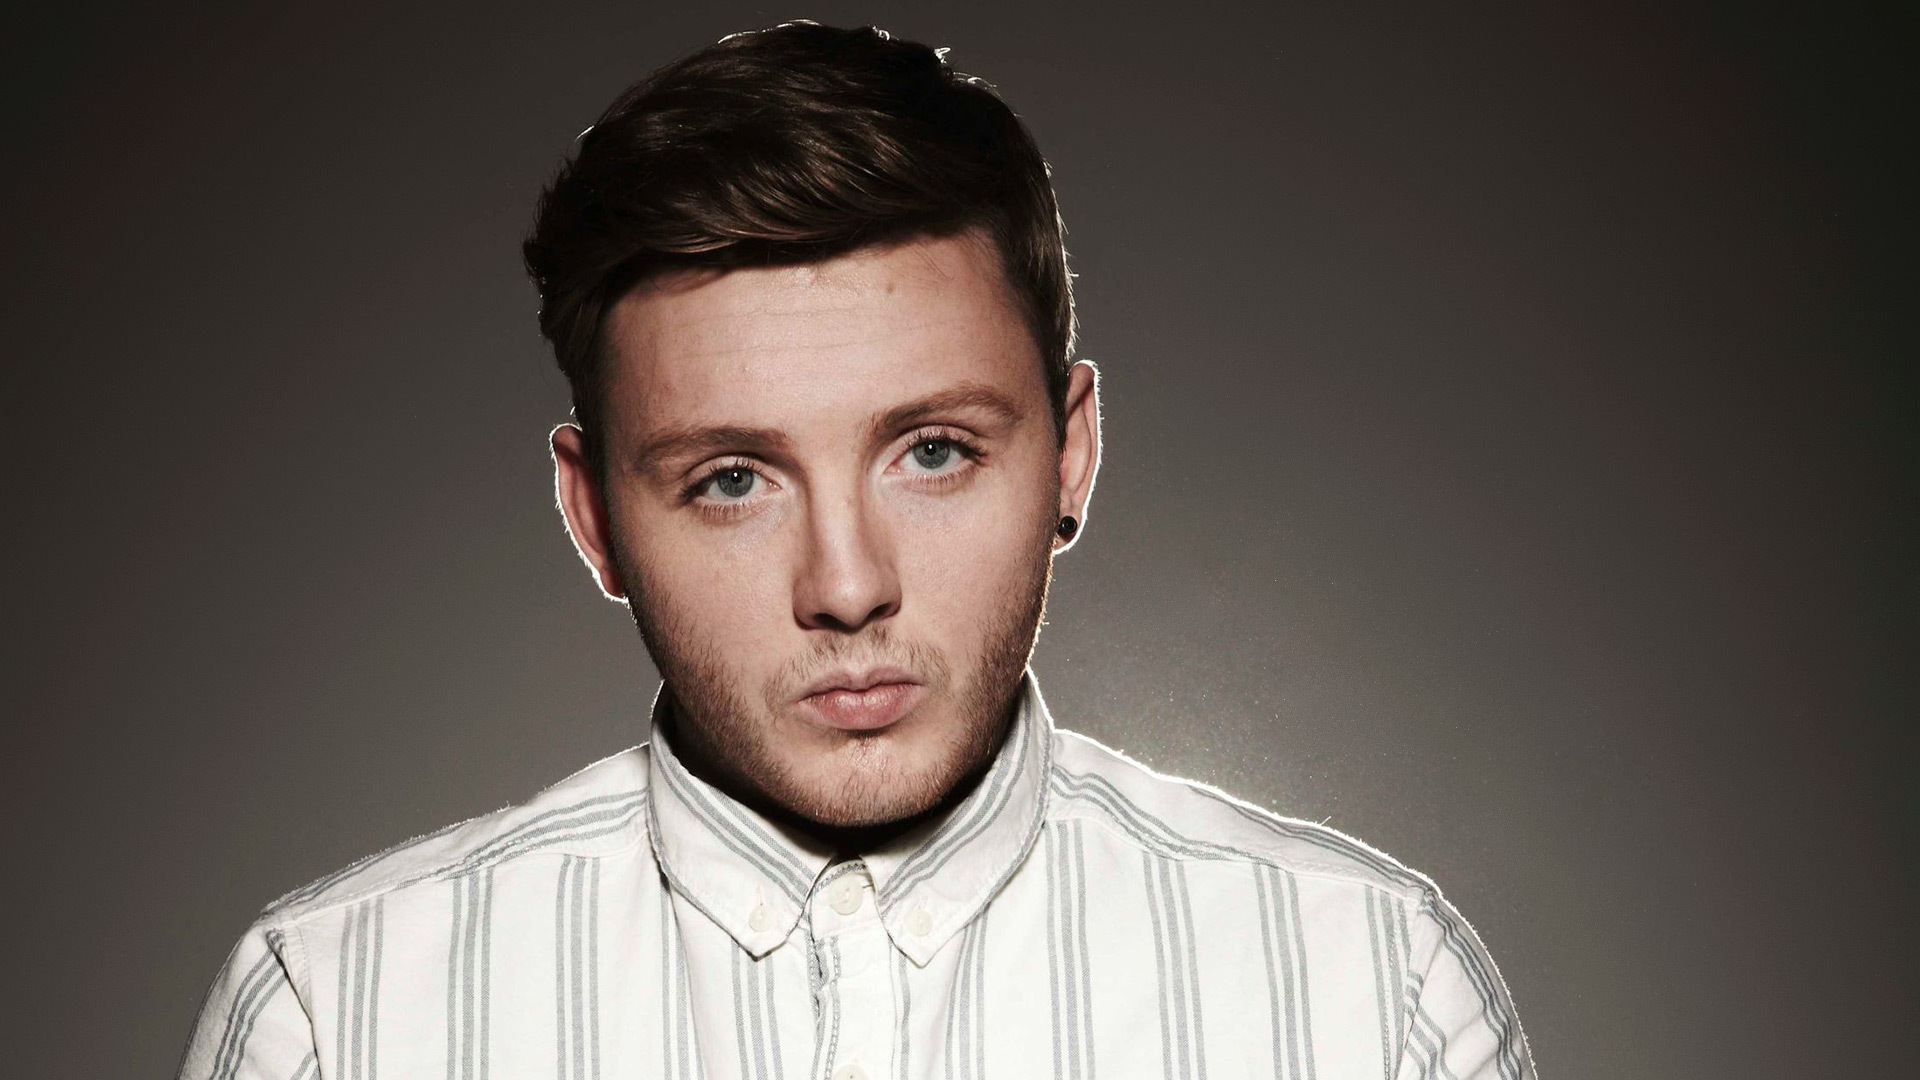 Pictures Of James Arthur